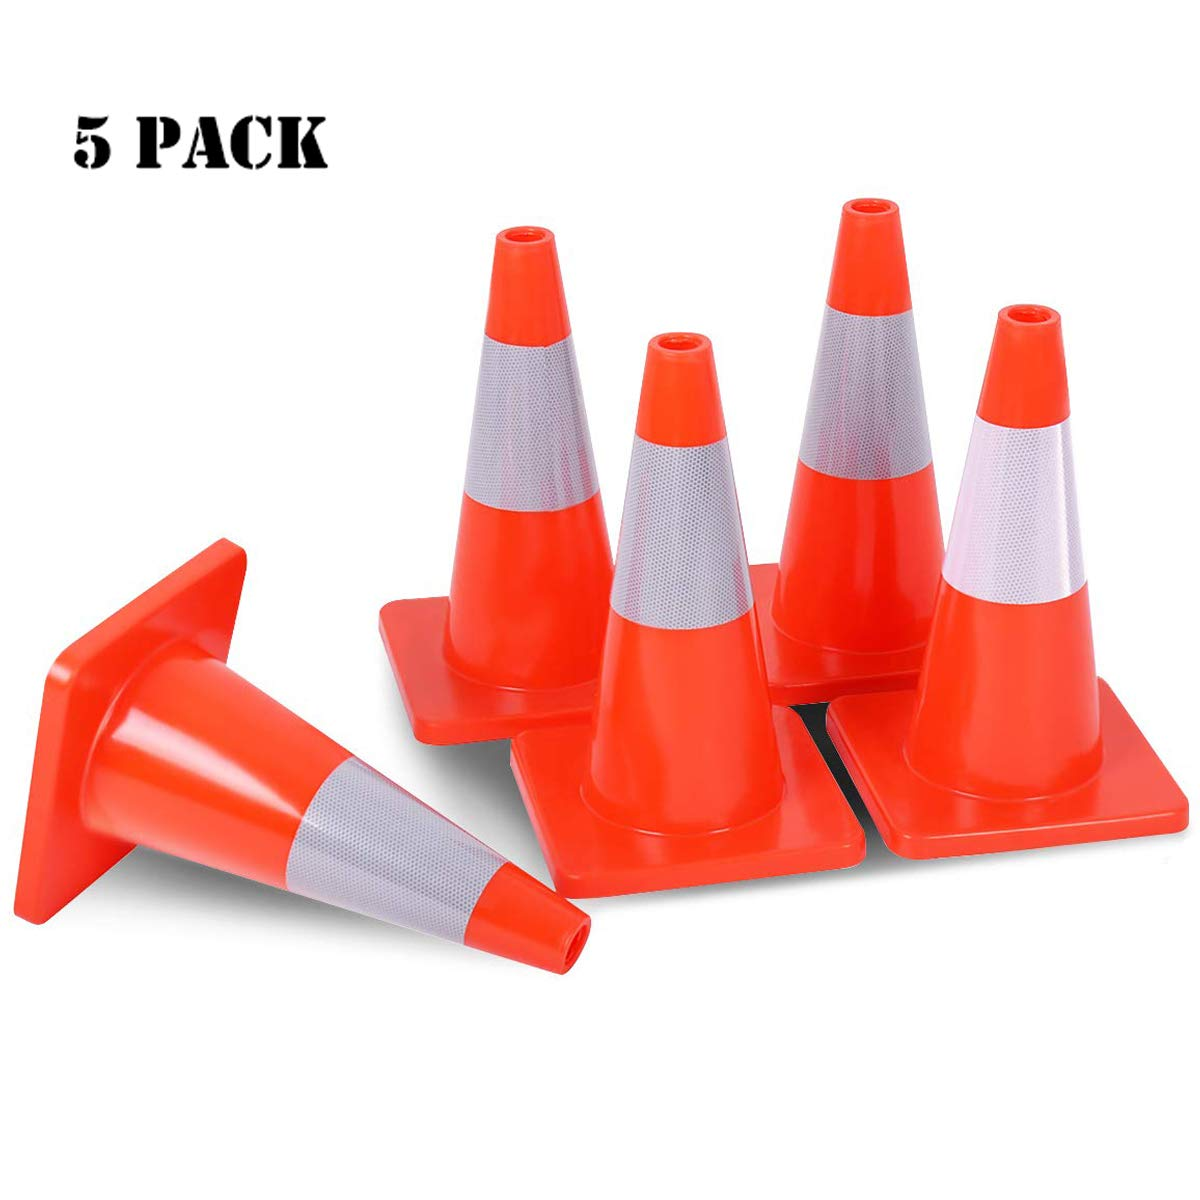 GOPLUS 5PCS Traffic Cones 18'' PVC Safety Road Parking Cones Driving Construction Cones Orange with 6'' Reflective Strips Collar by GOPLUS